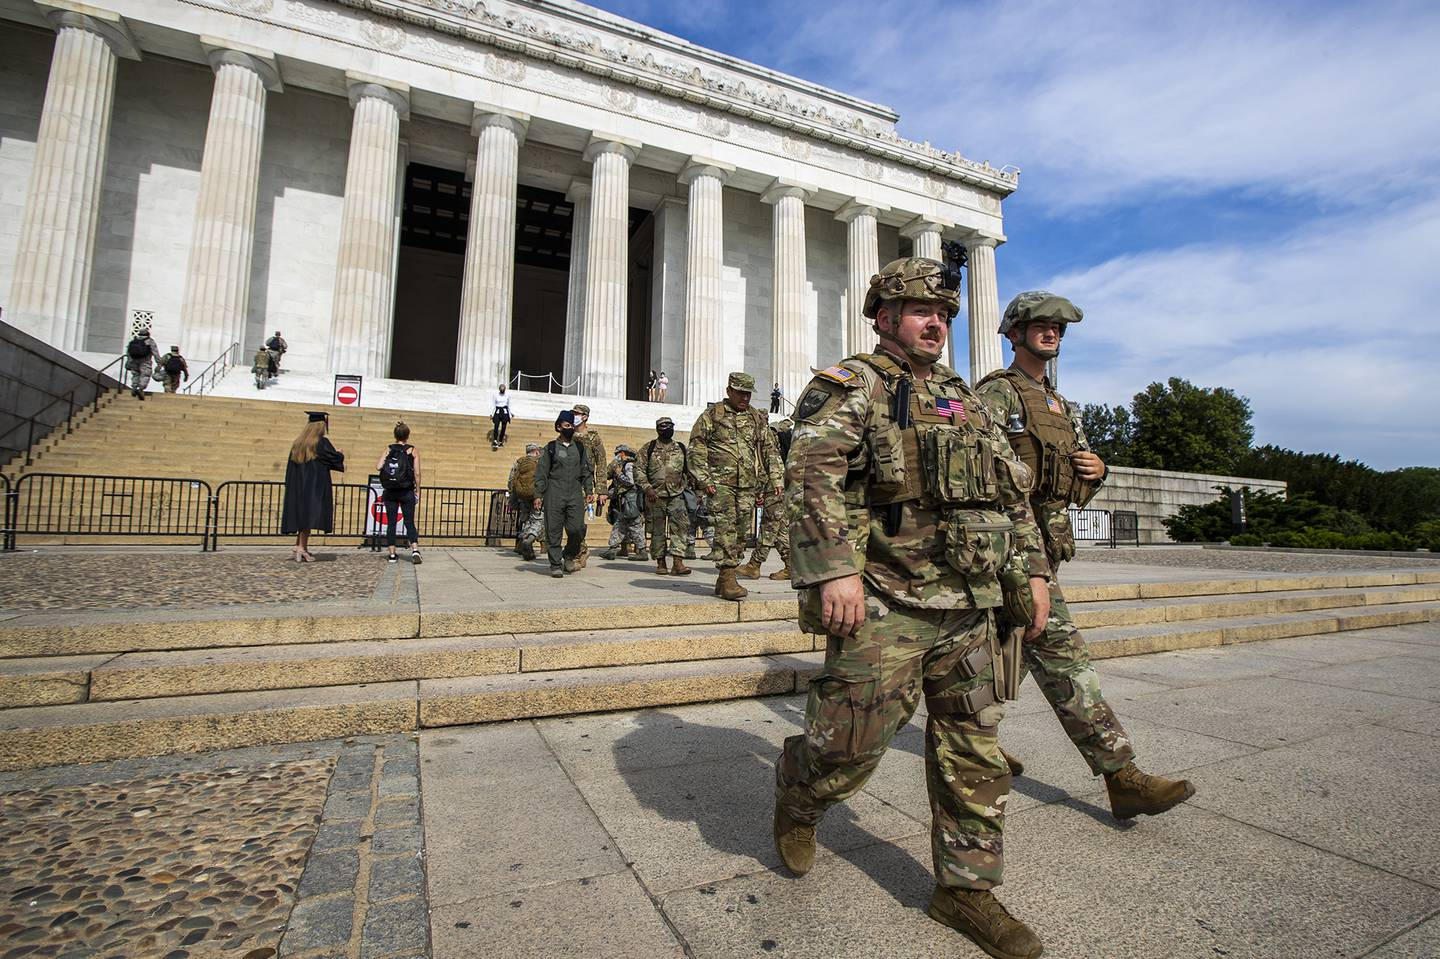 Members of the District of Columbia Army National Guard walk to their designated positions at the National Mall near the Lincoln Memorial in Washington, Wednesday, June 3, 2020, securing the area as protests continue following the death of George Floyd, a who died after being restrained by Minneapolis police officers.